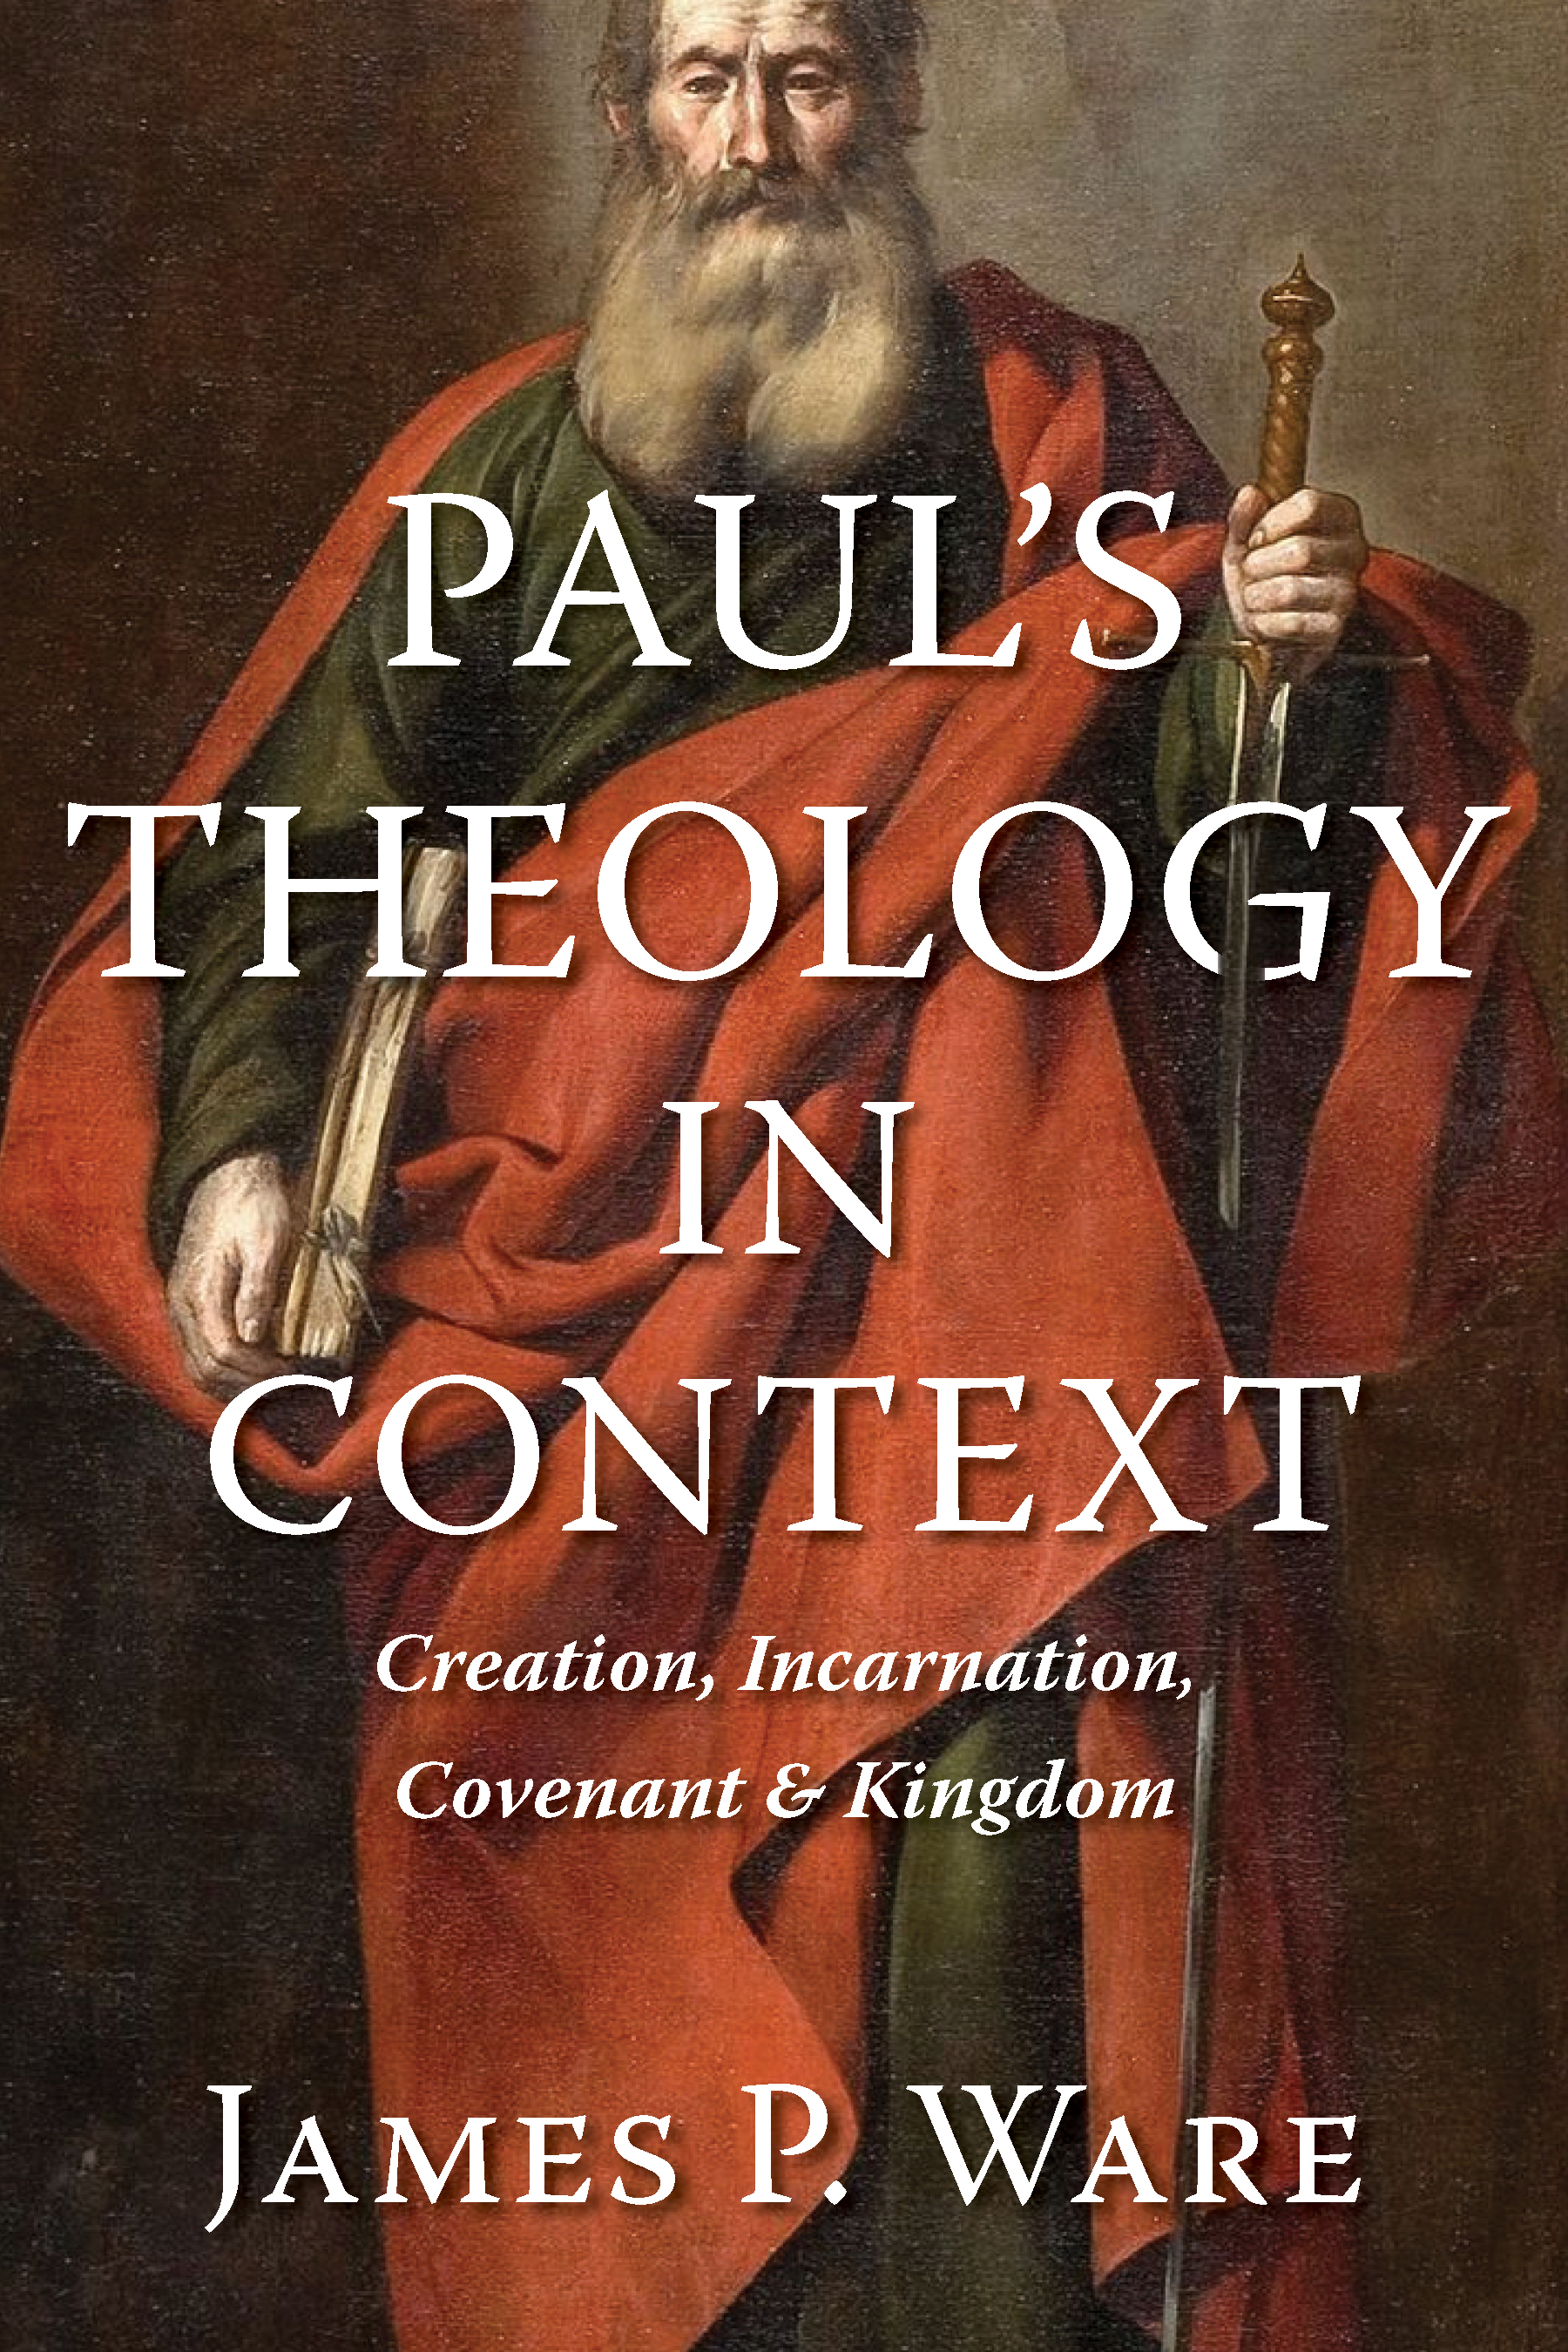 Paul's Theology in Context